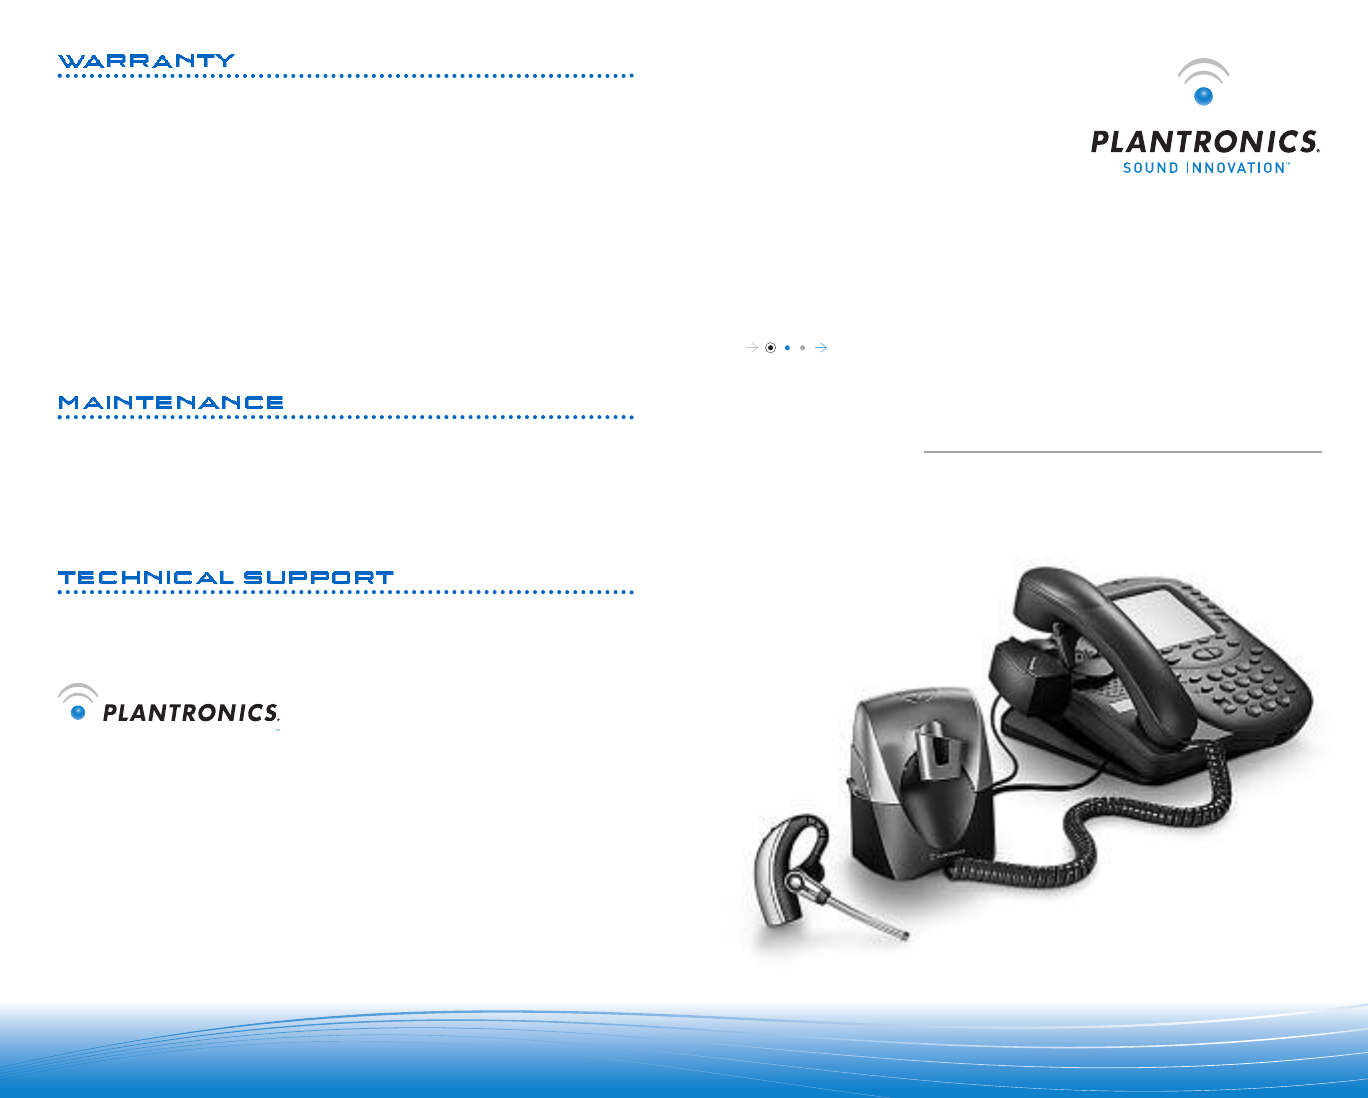 plantronics wireless office headset cs70 user guide manualsonline com rh phone manualsonline com Plantronics CS70 Setup Plantronics CS70 Headset Battery